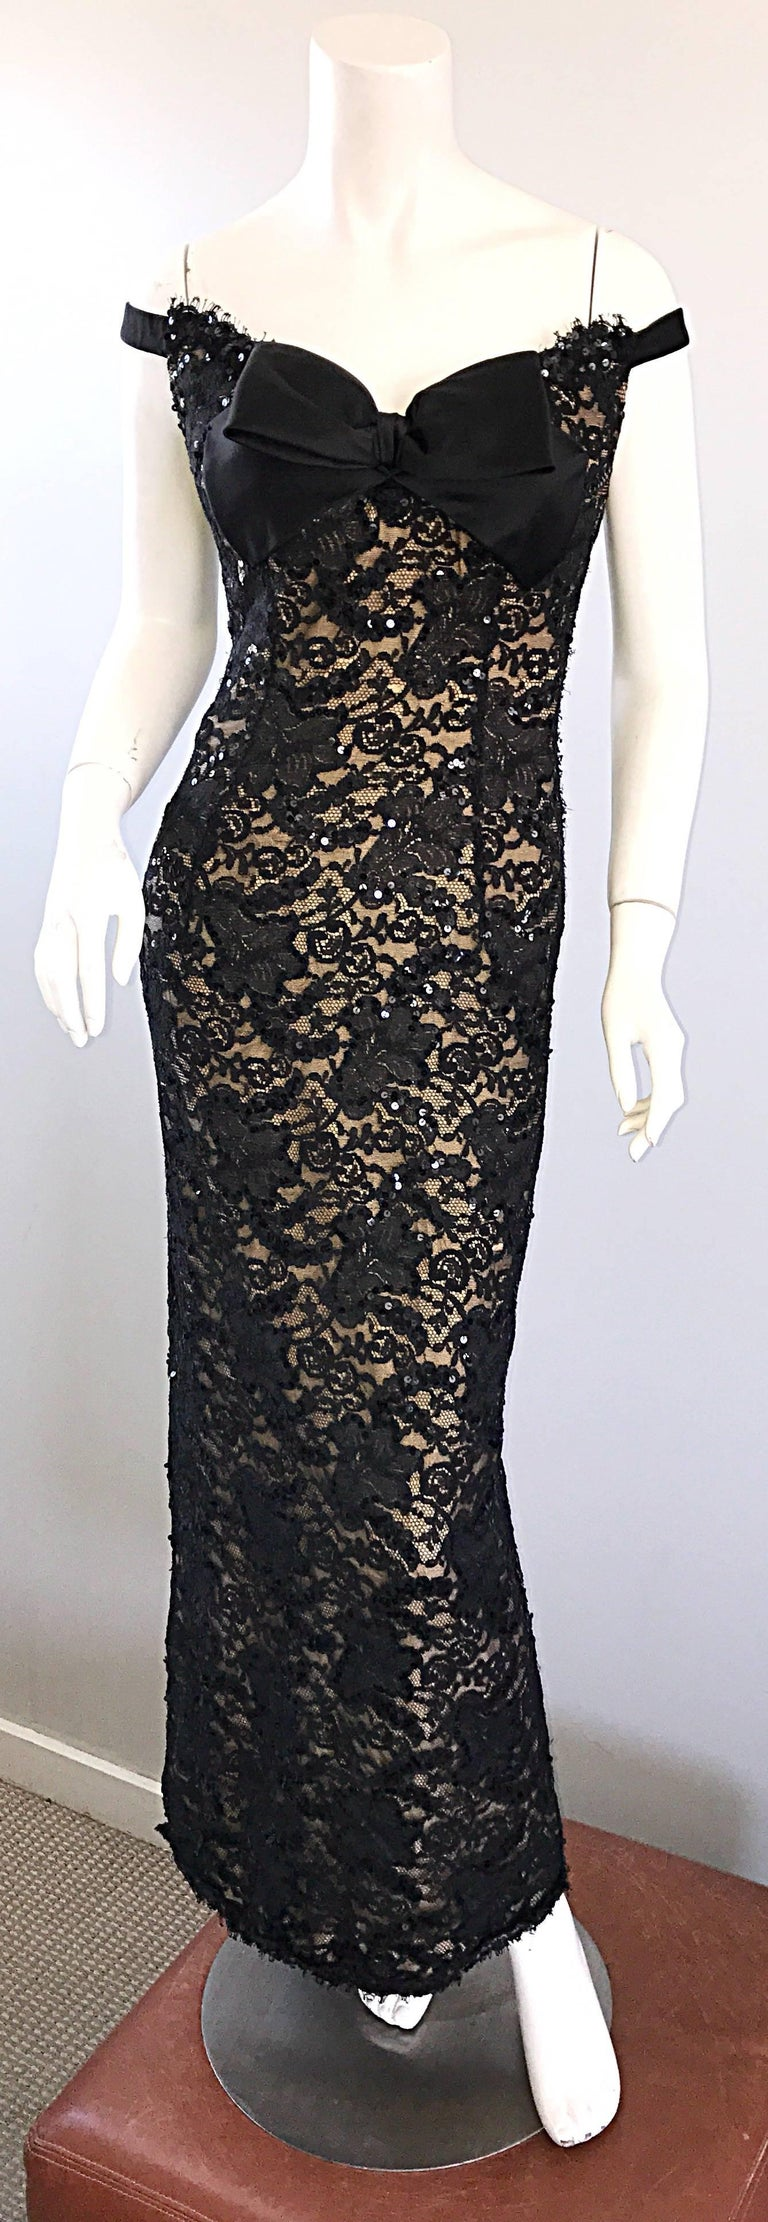 Vintage Bob Mackie Black Lace Sequin Size 8 1990s 90s Evening Off Shoulder Gown  For Sale 1